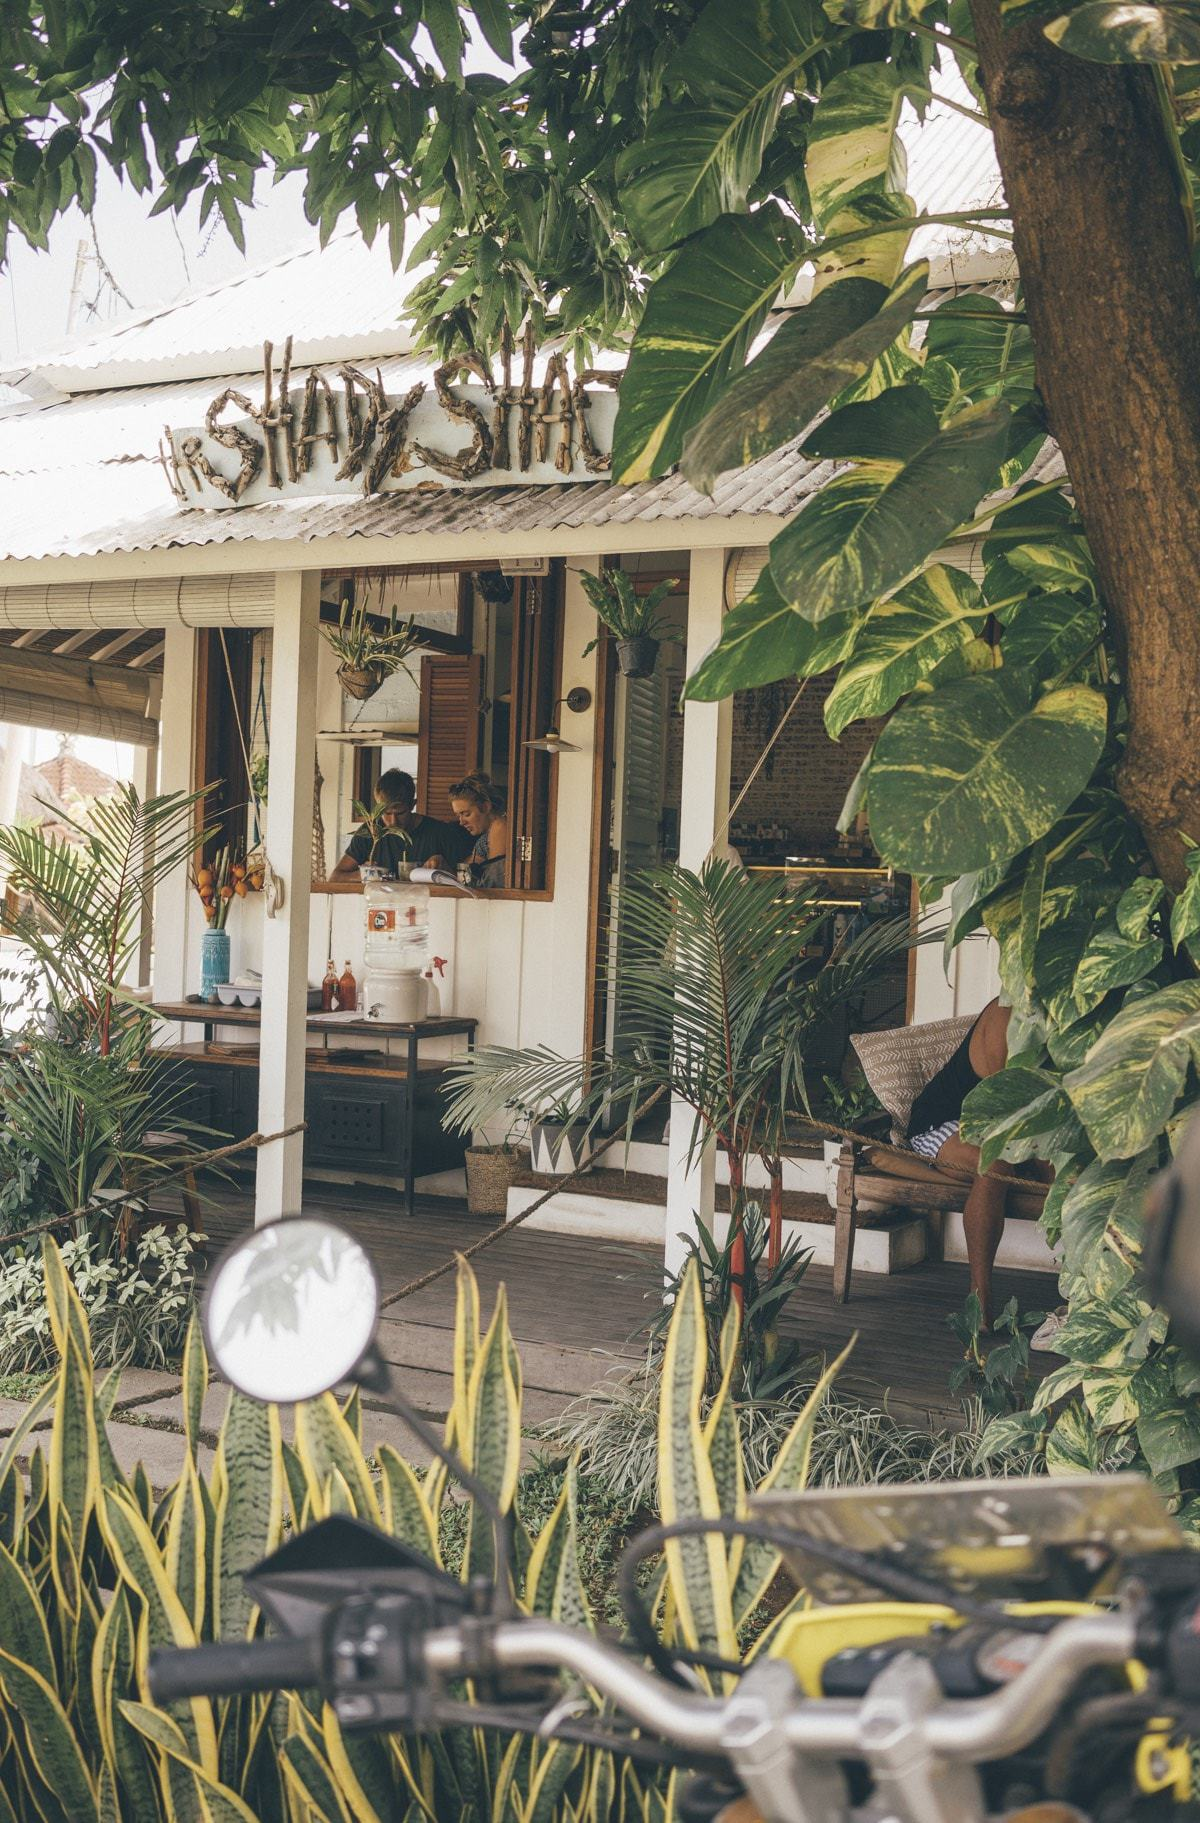 The Best Cafes and Restaurants in Canggu, Bali